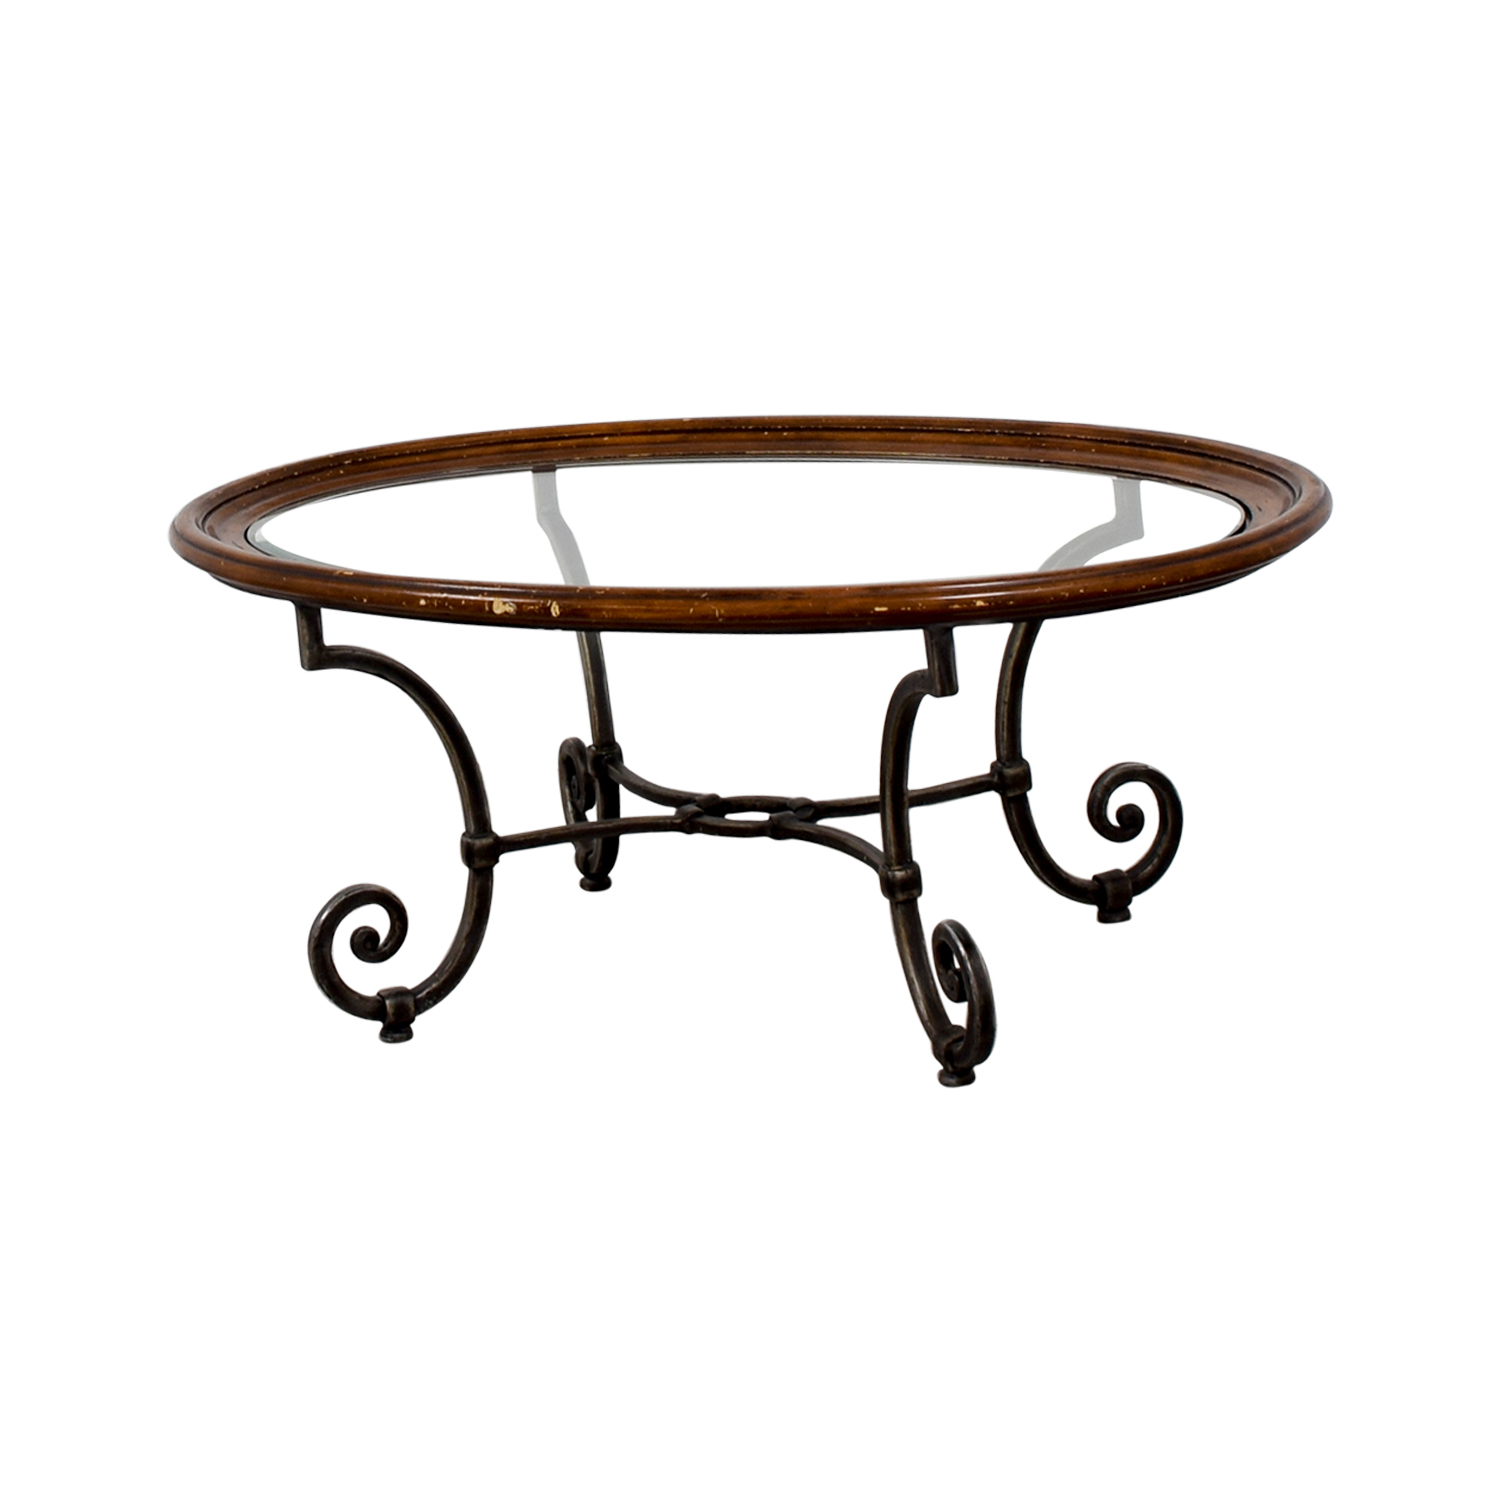 Ethan Allen Ethan Allen Glass Coffee Table coupon